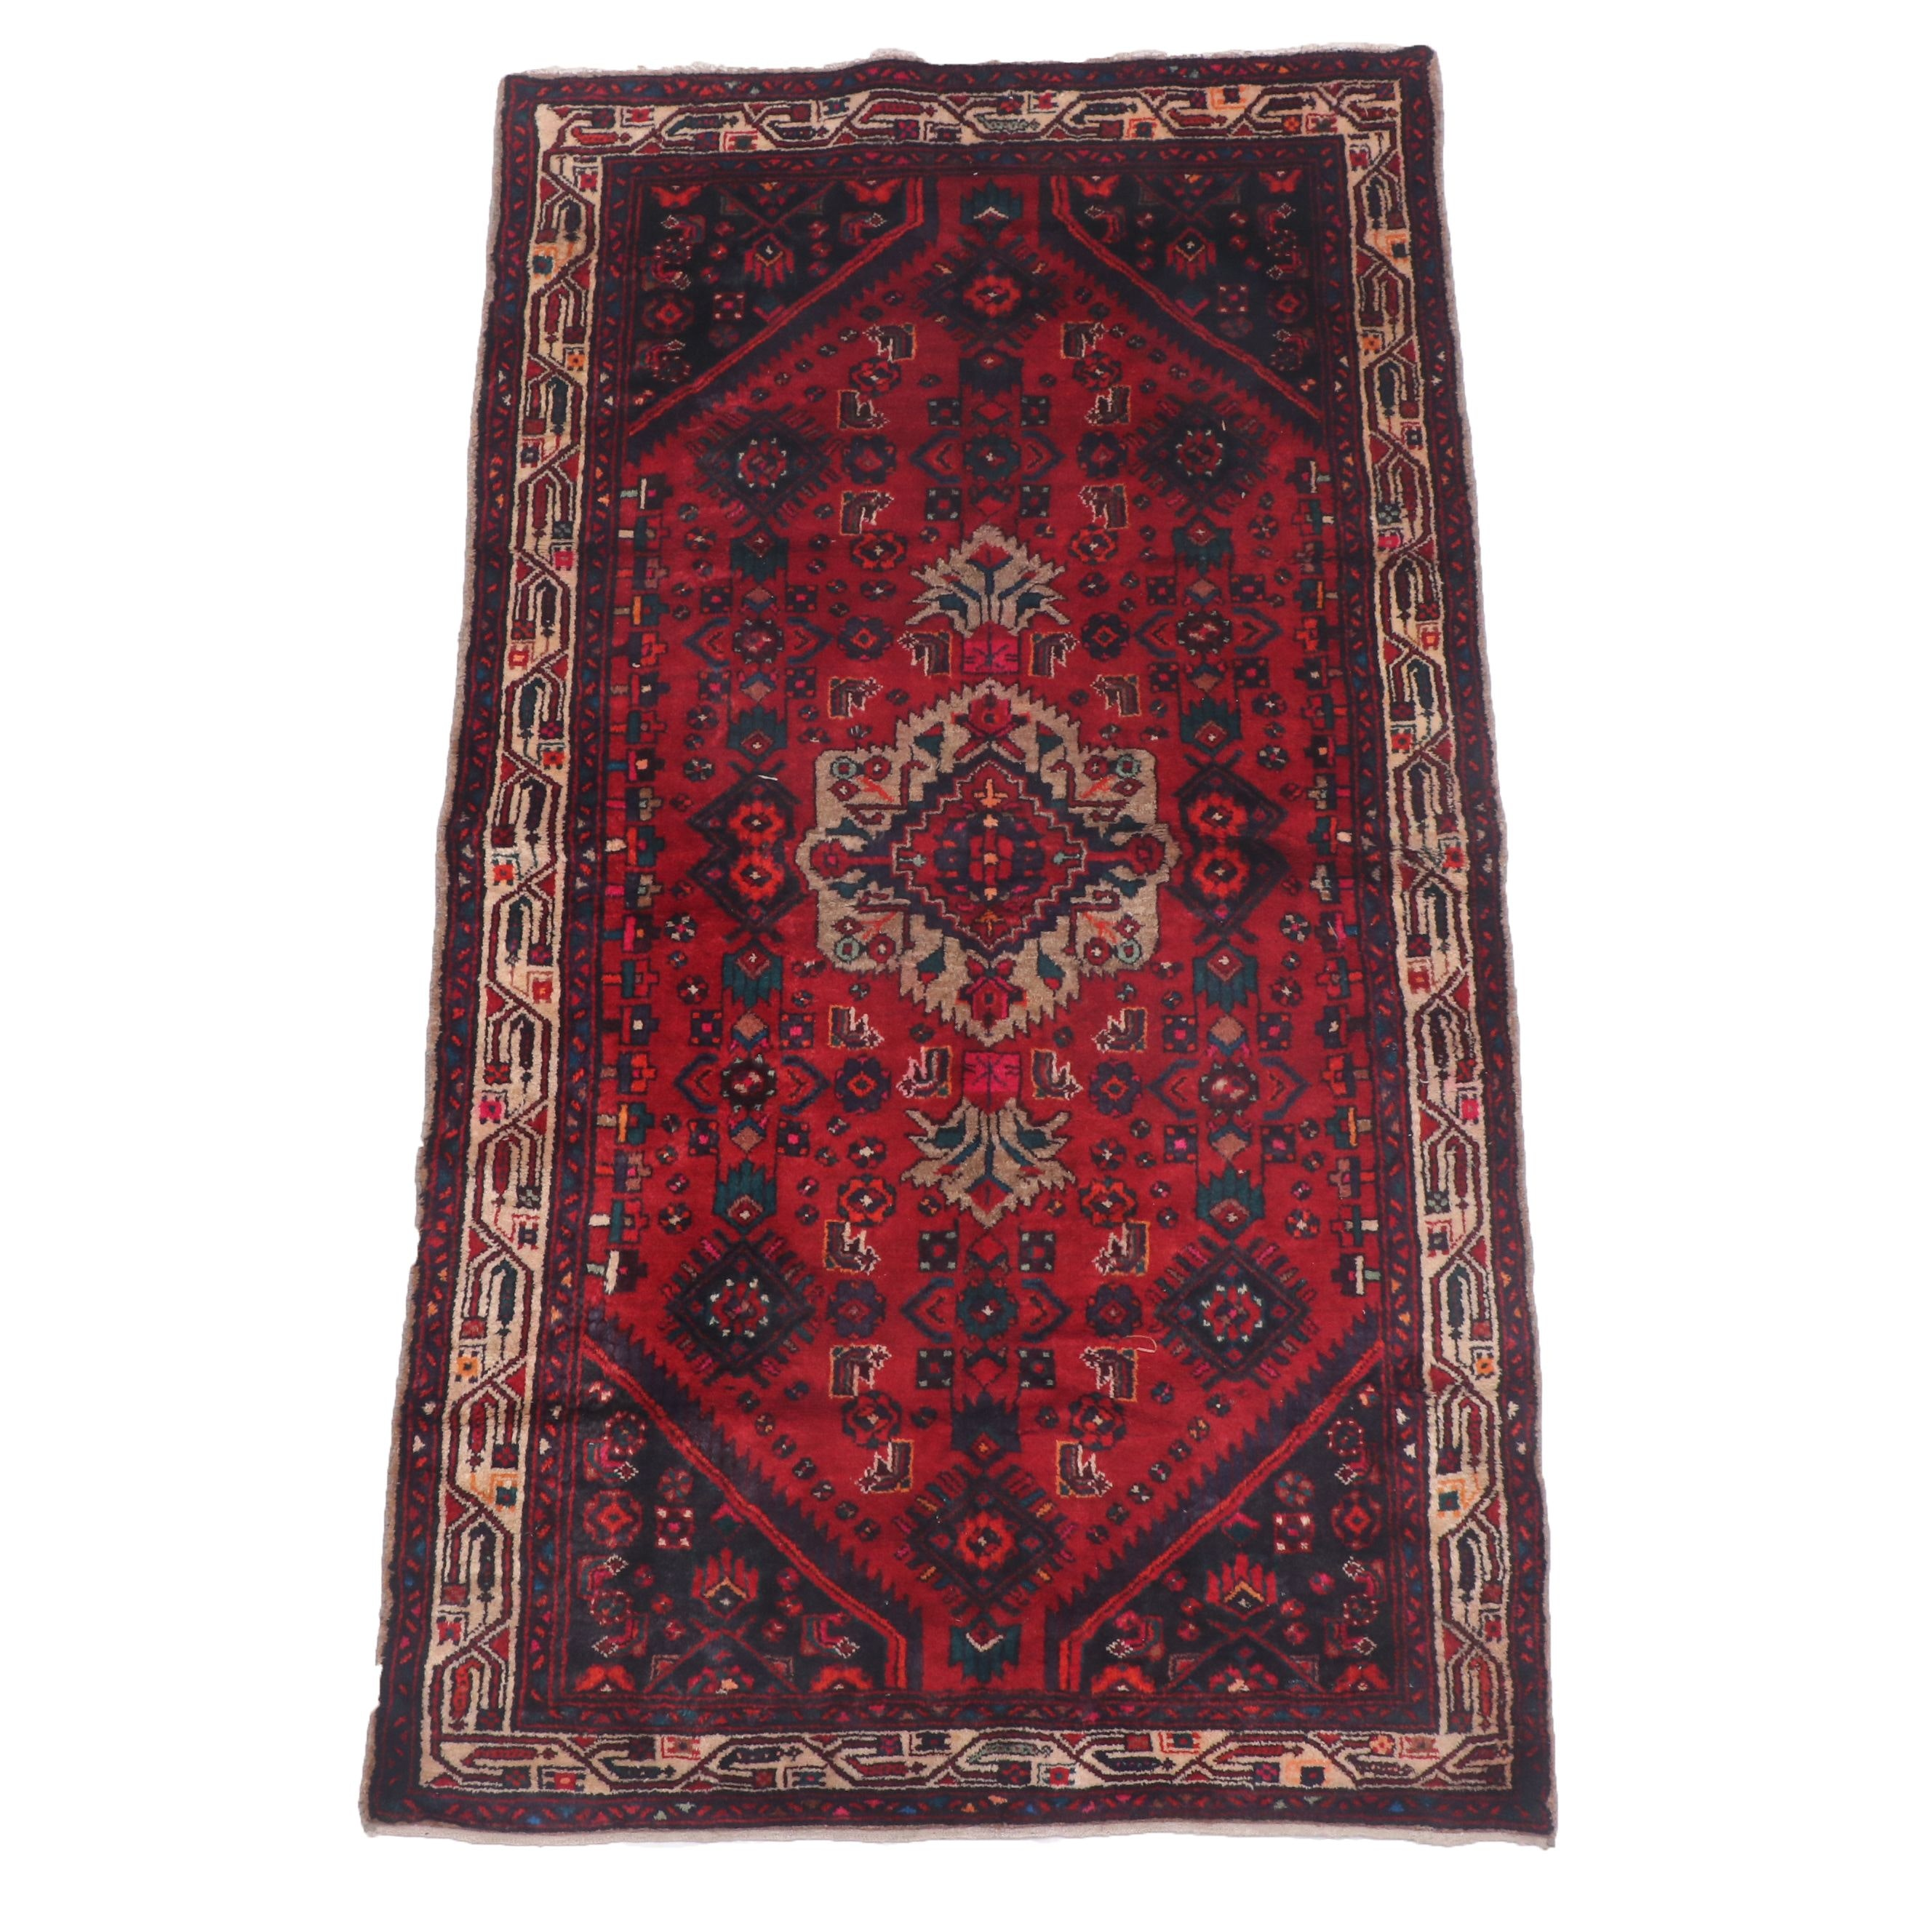 Hand-Knotted Persian Seraband Wool Area Rug